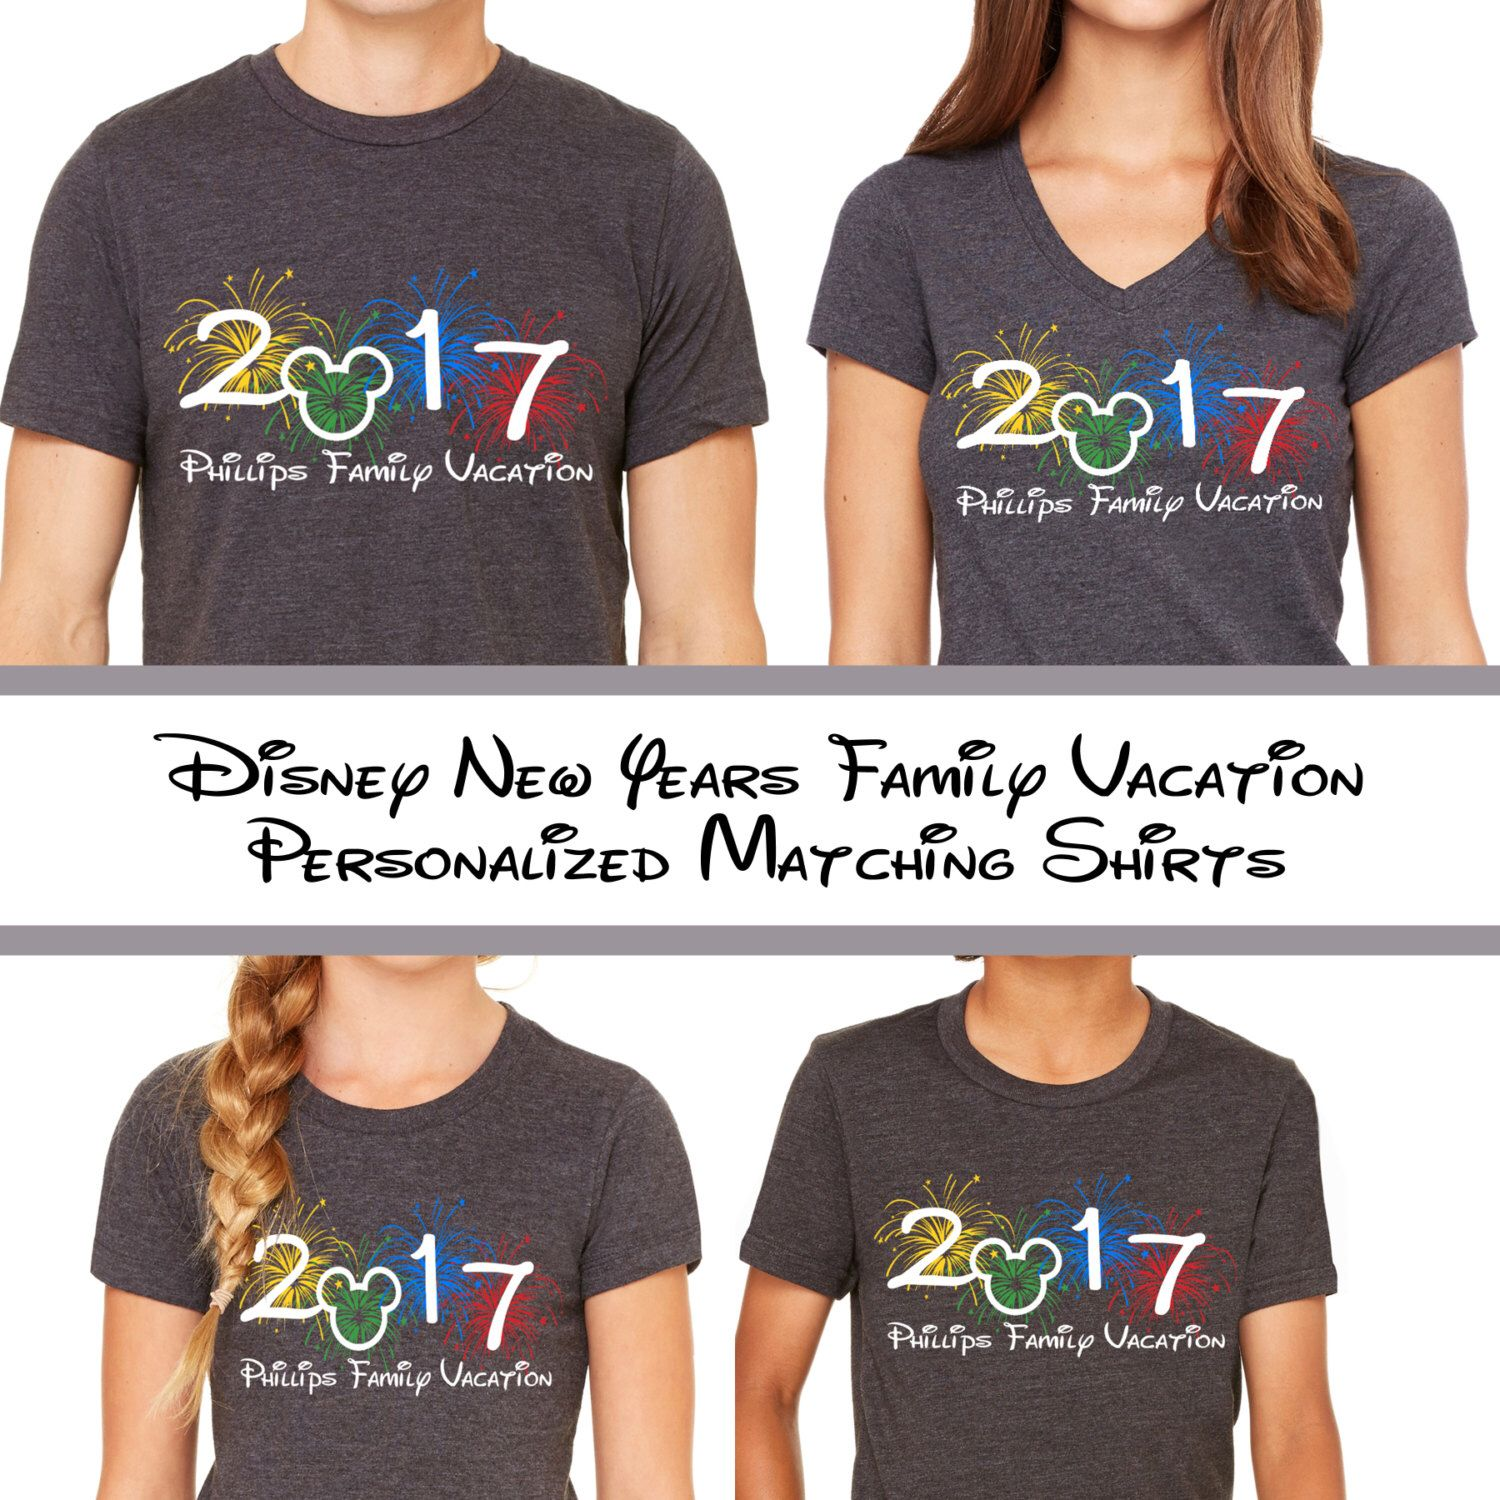 Disneyland new year family vacation matching tees 2017 for Custom t shirts family vacation